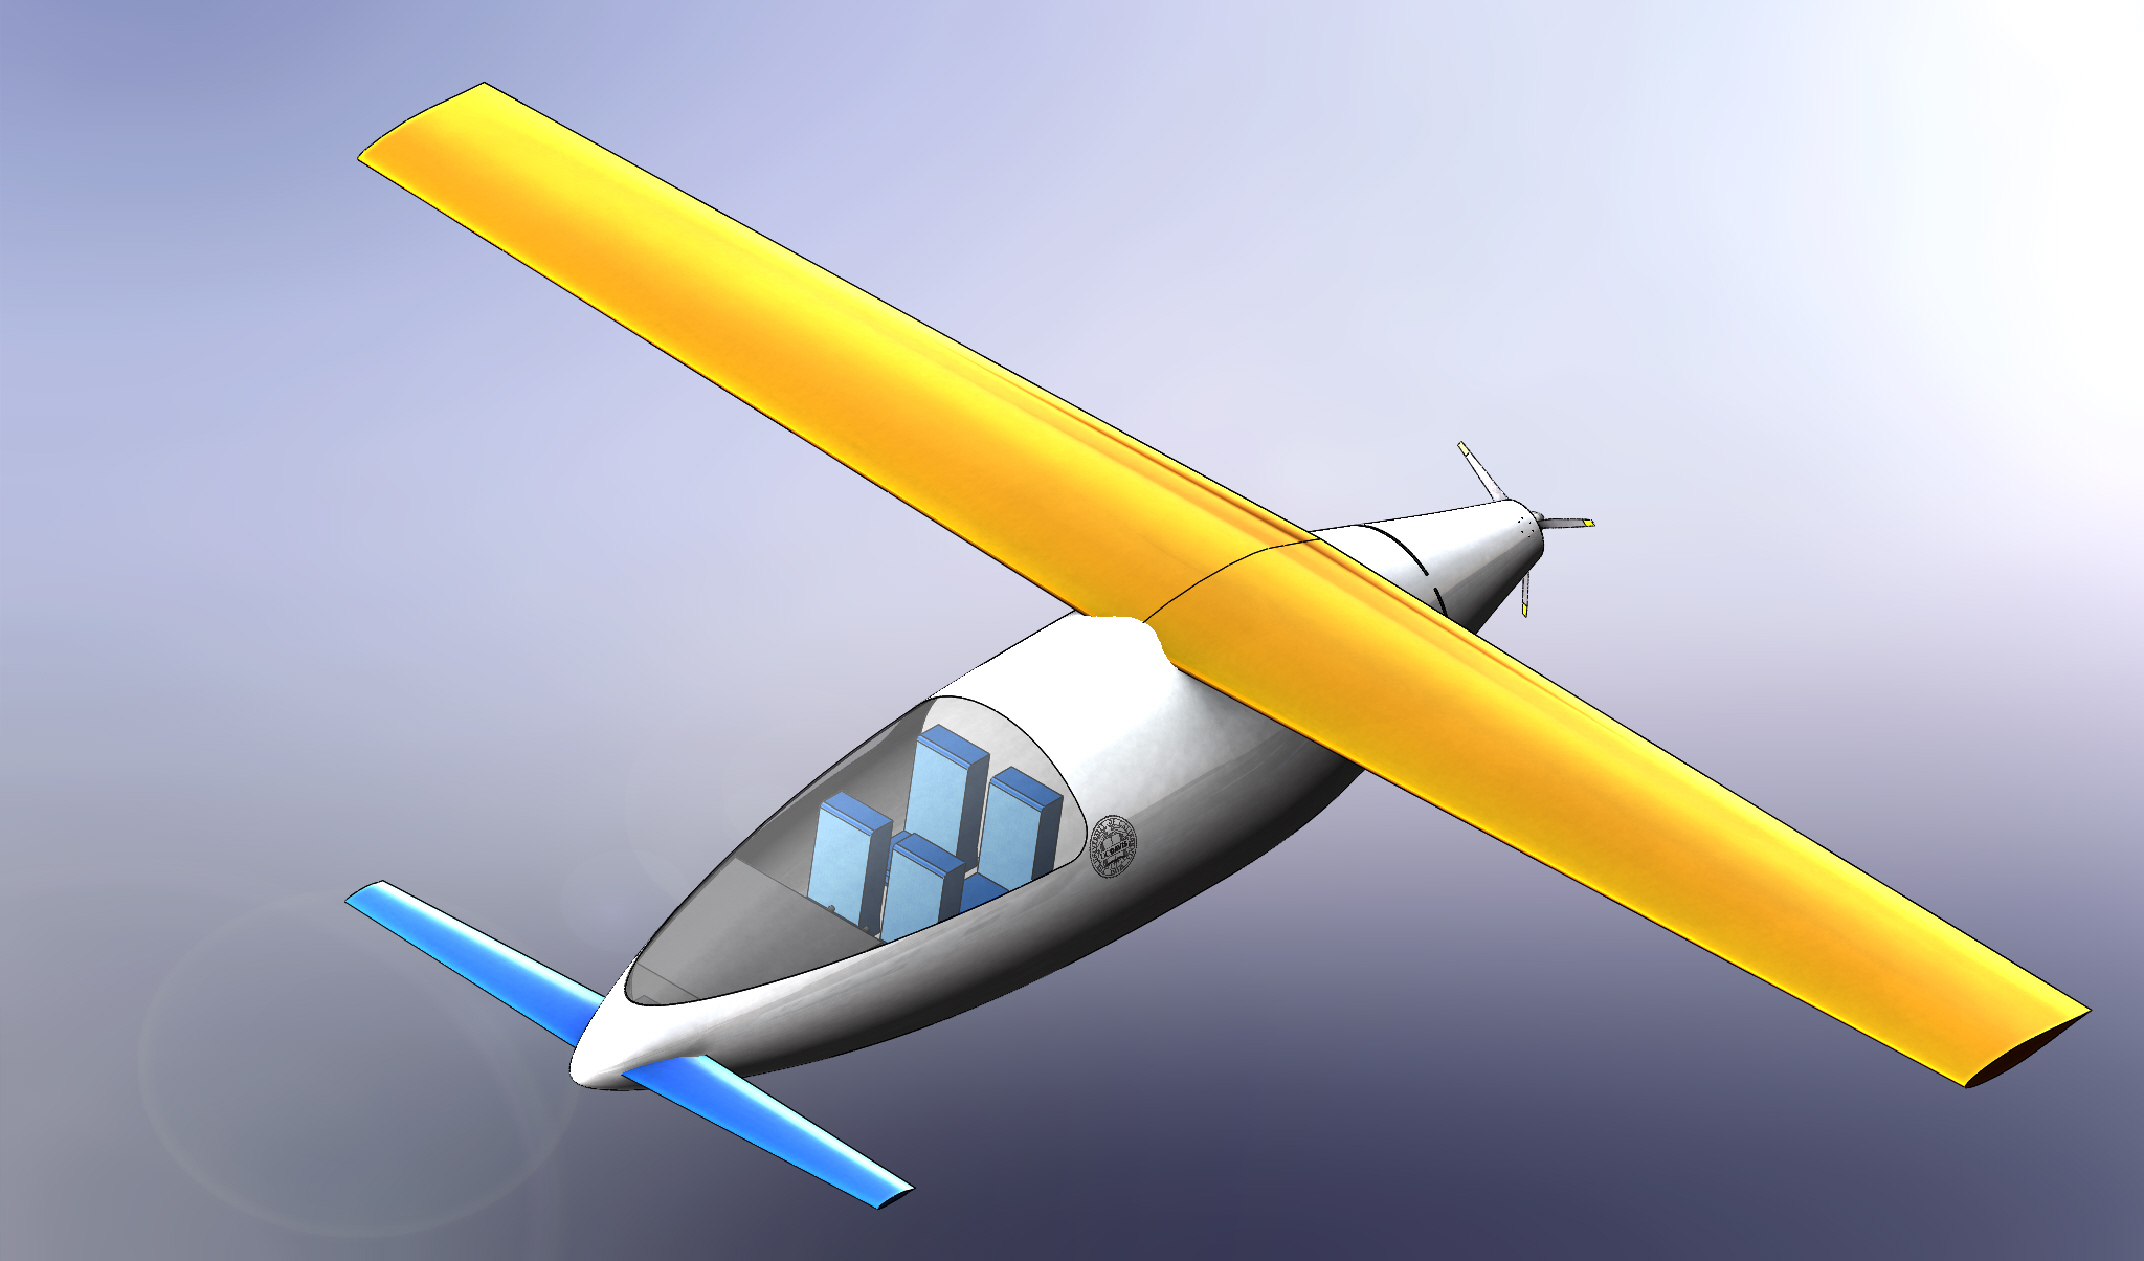 With the recent advances in technology and design aircraft concepts - Artist Concept Of The Areion Future Aircraft Design